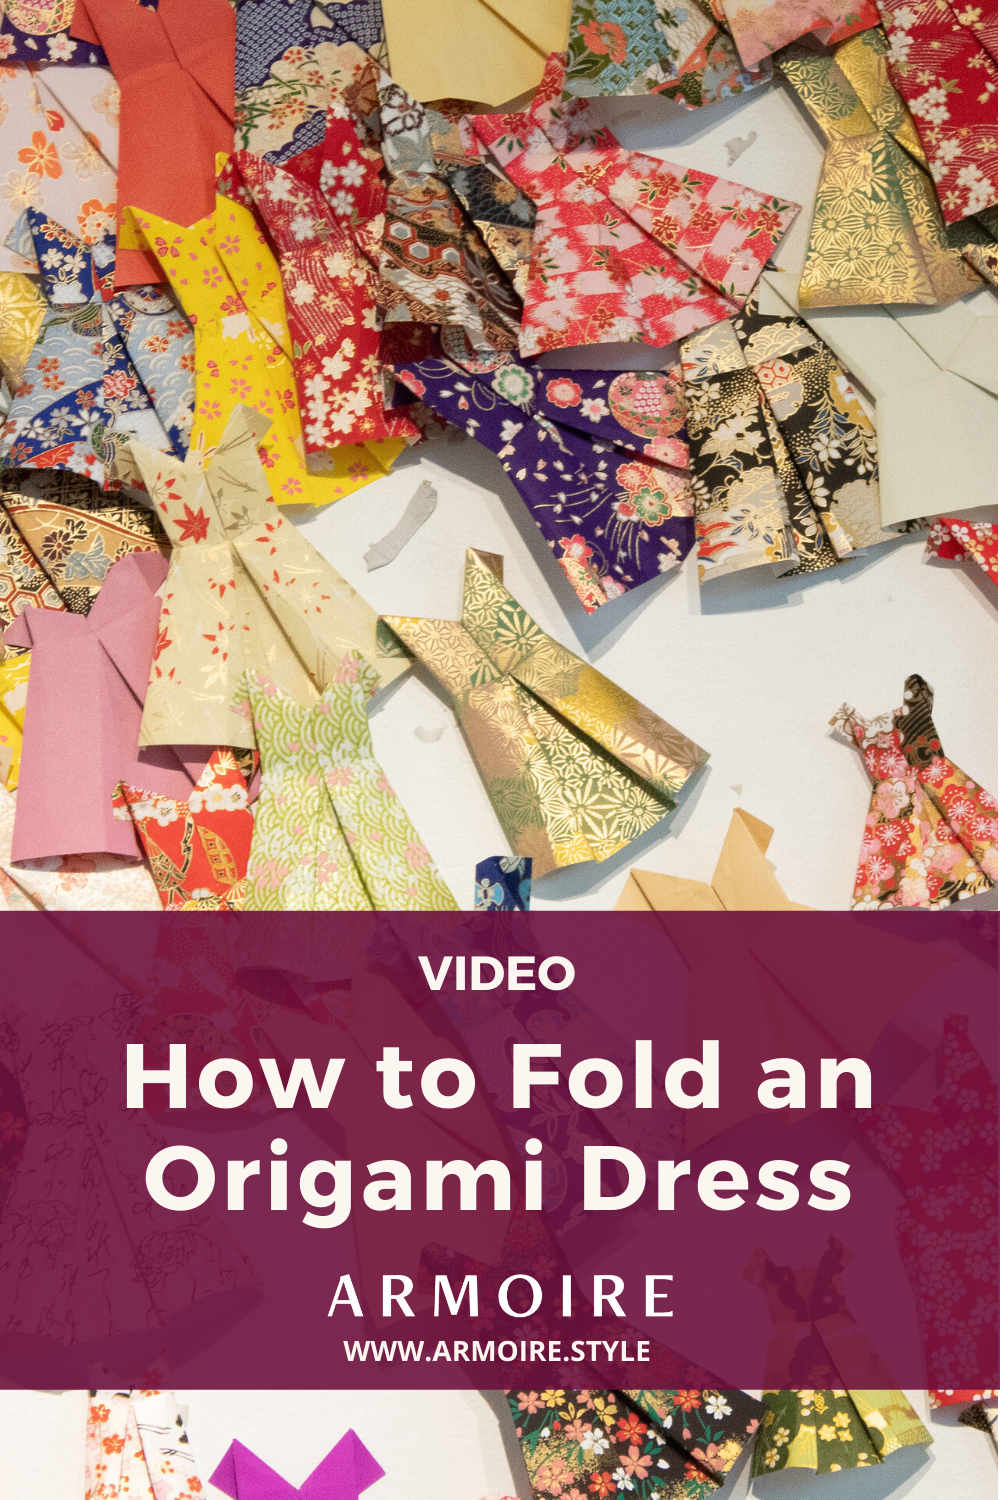 Photo of How to Fold an Origami Dress by Armoire